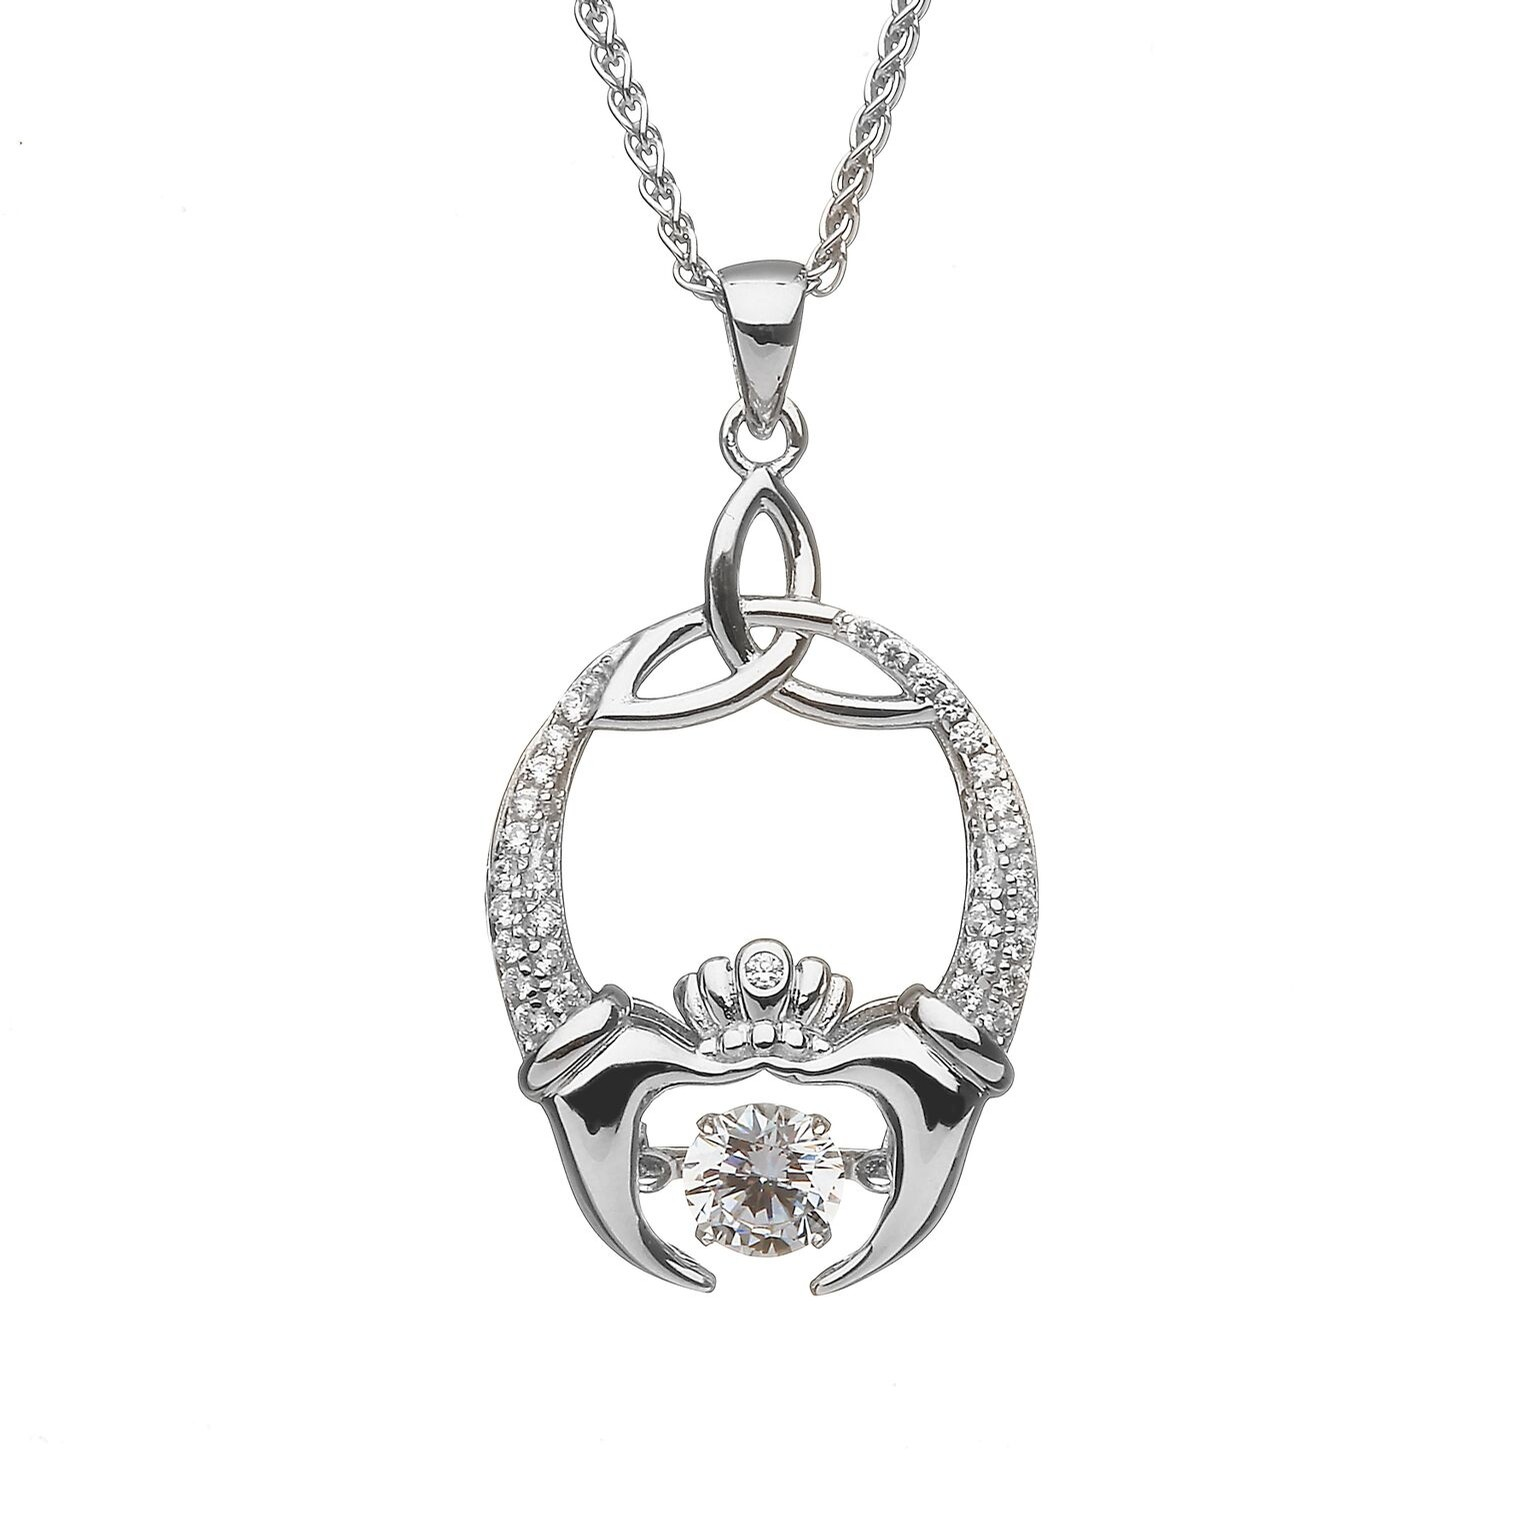 Damhsa Trinity and Claddagh Pendant with Dancing CZ